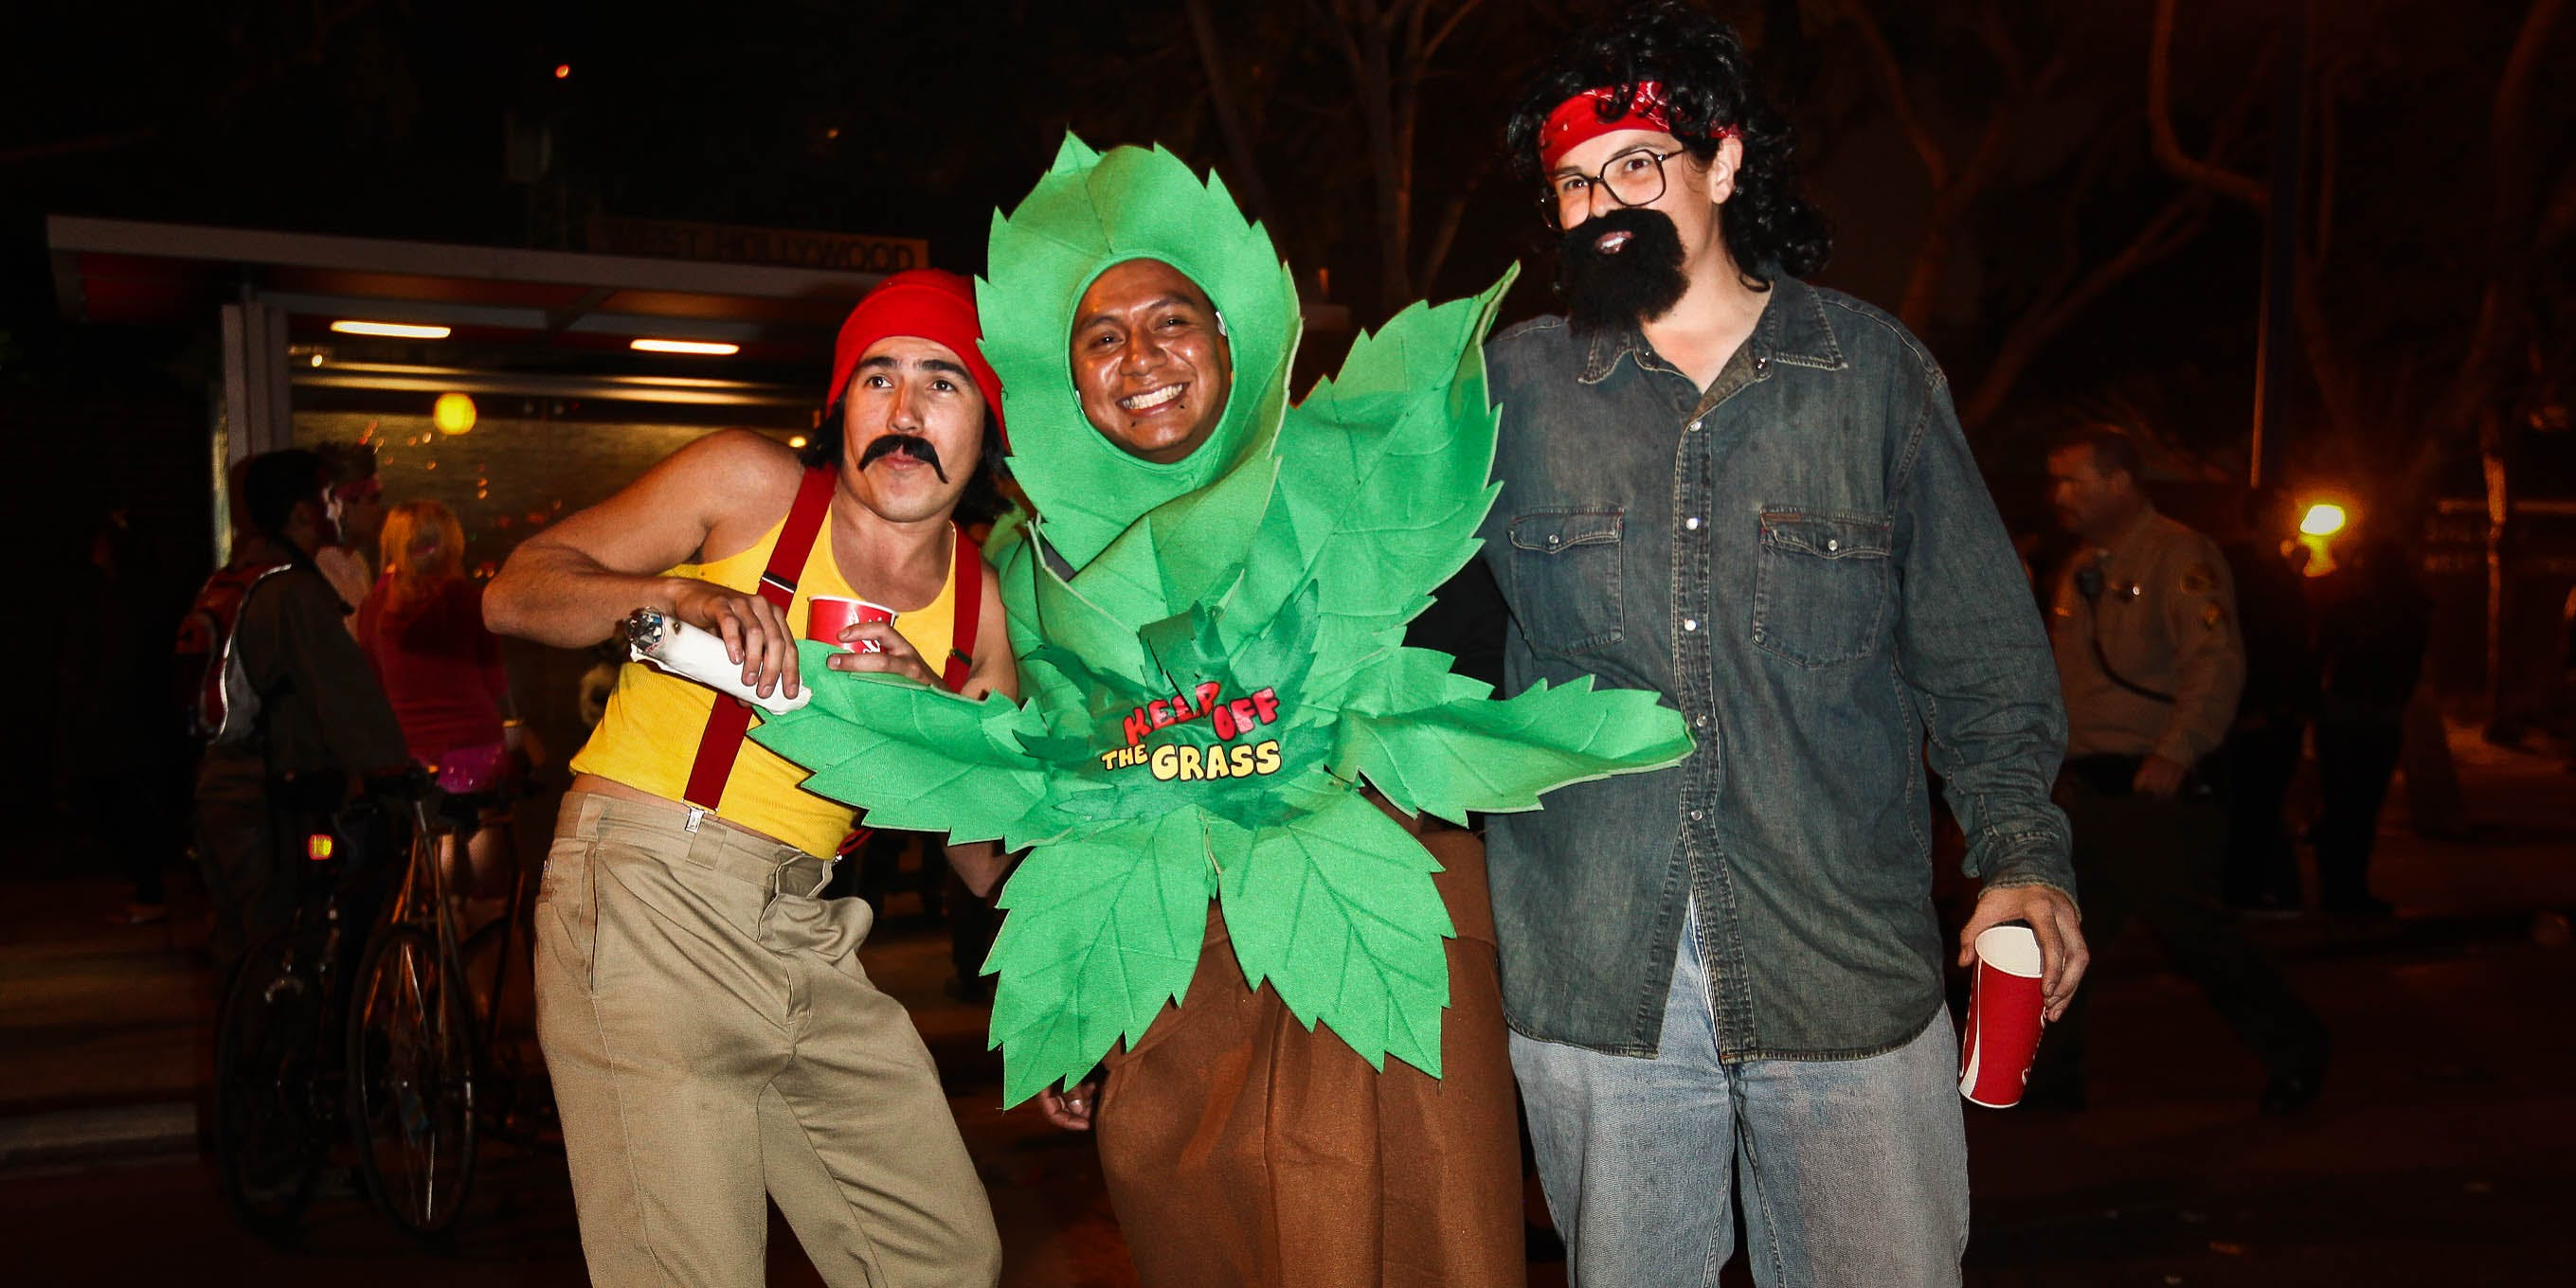 20 Easy And Hilarious Weed Halloween Costume Ideas | Herb | Herb